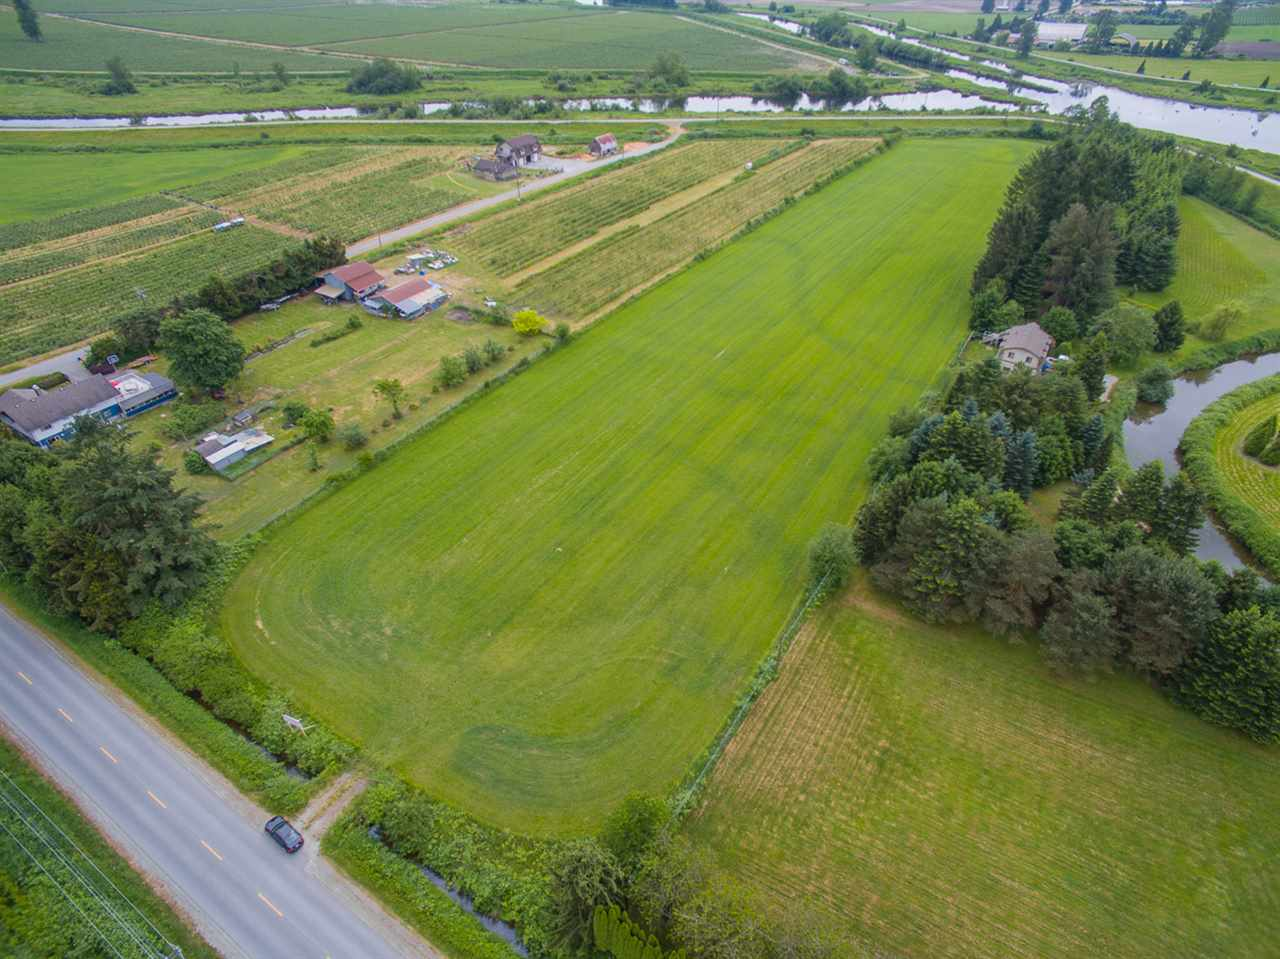 Main Photo: LOT 4 MCNEIL ROAD in Pitt Meadows: North Meadows PI Home for sale : MLS® # R2068304